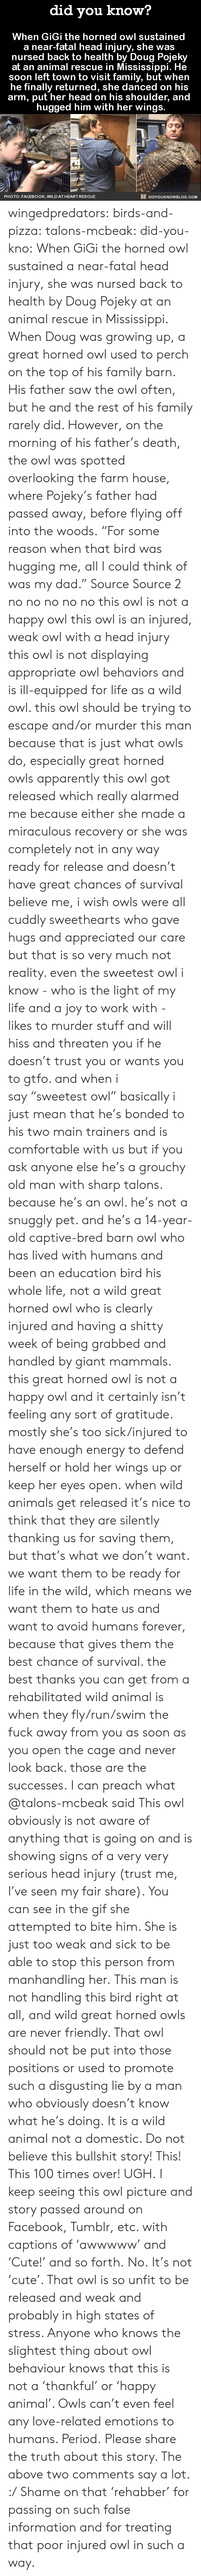 "Lived: did you know?  When GiGi the horned owl sustained  a near-fatal head injury, she was  nursed back to health by Doug Pojeky  at an animal rescue in Mississippi. He  soon left town to visit family, but when  he finally returned, she danced on his  arm, put her head on his shoulder, and  hugged him with her wings.  PHOTO: FACEBOOK, WILD AT HEART RES CUE  DIDYOUKNOWBLOG.COM wingedpredators: birds-and-pizza:  talons-mcbeak:  did-you-kno:  When GiGi the horned owl sustained  a near-fatal head injury, she was  nursed back to health by Doug Pojeky  at an animal rescue in Mississippi. When Doug was growing up, a great horned owl used to perch on the top of his family barn. His father saw the owl often, but he and the rest of his family rarely did. However, on the morning of his father's death, the owl was spotted overlooking the farm house, where Pojeky's father had passed away, before flying off into the woods. ""For some reason when that bird was hugging me, all I could think of was my dad."" Source Source 2  no no no no no this owl is not a happy owl this owl is an injured, weak owl with a head injury this owl is not displaying appropriate owl behaviors and is ill-equipped for life as a wild owl. this owl should be trying to escape and/or murder this man because that is just what owls do, especially great horned owls apparently this owl got released which really alarmed me because either she made a miraculous recovery or she was completely not in any way ready for release and doesn't have great chances of survival believe me, i wish owls were all cuddly sweethearts who gave hugs and appreciated our care but that is so very much not reality. even the sweetest owl i know - who is the light of my life and a joy to work with - likes to murder stuff and will hiss and threaten you if he doesn't trust you or wants you to gtfo. and when i say ""sweetest owl"" basically i just mean that he's bonded to his two main trainers and is comfortable with us but if you ask anyone else he's a grouchy old man with sharp talons. because he's an owl. he's not a snuggly pet. and he's a 14-year-old captive-bred barn owl who has lived with humans and been an education bird his whole life, not a wild great horned owl who is clearly injured and having a shitty week of being grabbed and handled by giant mammals. this great horned owl is not a happy owl and it certainly isn't feeling any sort of gratitude. mostly she's too sick/injured to have enough energy to defend herself or hold her wings up or keep her eyes open. when wild animals get released it's nice to think that they are silently thanking us for saving them, but that's what we don't want. we want them to be ready for life in the wild, which means we want them to hate us and want to avoid humans forever, because that gives them the best chance of survival. the best thanks you can get from a rehabilitated wild animal is when they fly/run/swim the fuck away from you as soon as you open the cage and never look back. those are the successes.  I can preach what @talons-mcbeak said  This owl obviously is not aware of anything that is going on and is showing signs of a very very serious head injury (trust me, I've seen my fair share). You can see in the gif she attempted to bite him. She is just too weak and sick to be able to stop this person from manhandling her.  This man is not handling this bird right at all, and wild great horned owls are never friendly.  That owl should not be put into those positions or used to promote such a disgusting lie by a man who obviously doesn't know what he's doing.  It is a wild animal not a domestic. Do not believe this bullshit story!   This! This 100 times over! UGH. I keep seeing this owl picture and story passed around on Facebook, Tumblr, etc. with captions of 'awwwww' and 'Cute!' and so forth. No. It's not 'cute'.  That owl is so unfit to be released and weak and probably in high states of stress. Anyone who knows the slightest thing about owl behaviour knows that this is not a 'thankful' or 'happy animal'. Owls can't even feel any love-related emotions to humans. Period. Please share the truth about this story. The above two comments say a lot. :/ Shame on that 'rehabber' for passing on such false information and for treating that poor injured owl in such a way."